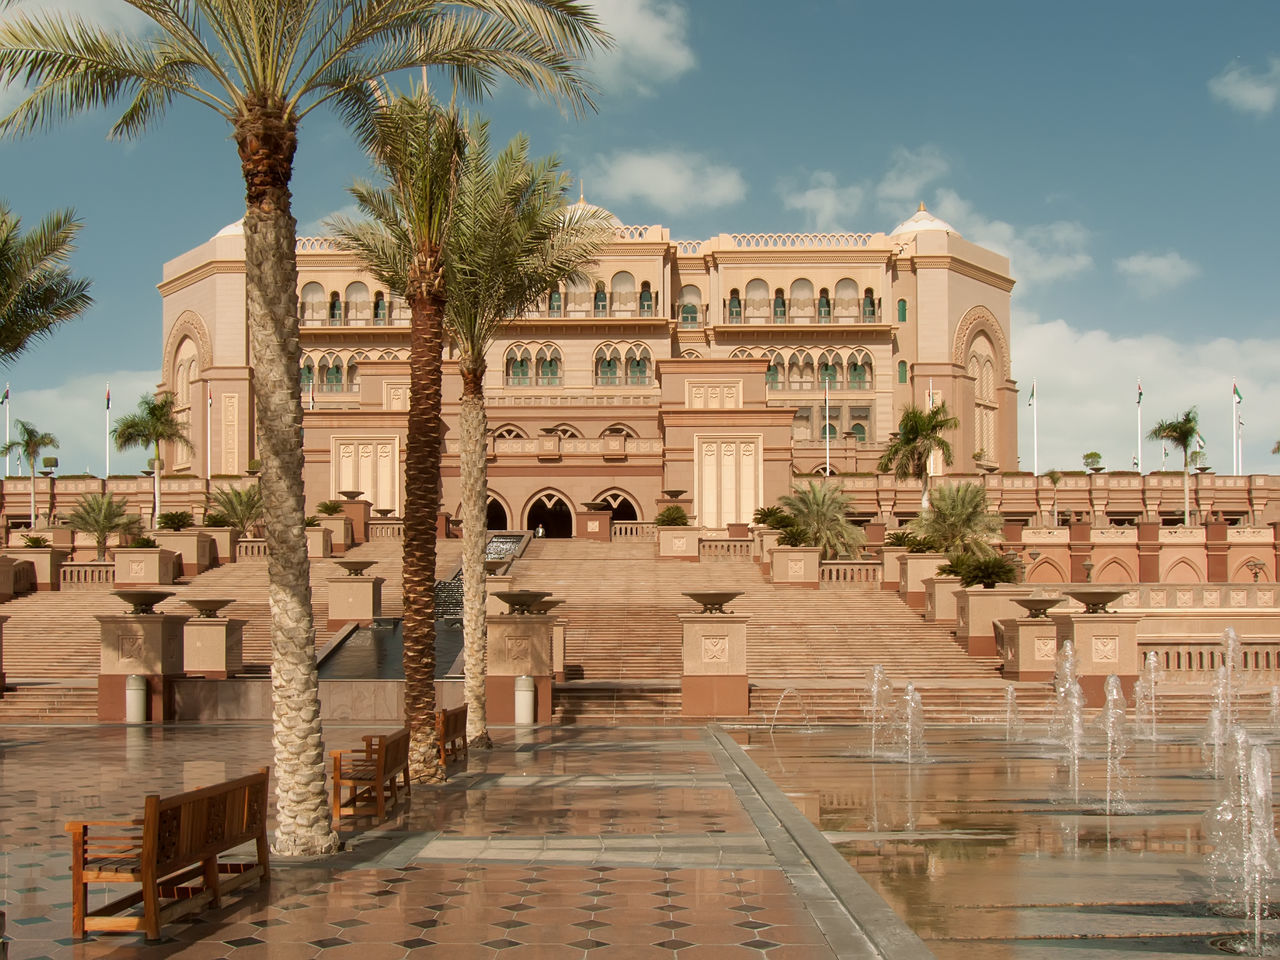 Emirates palace Abu Dhabi Architecture Bench Benches Building Exterior City Clouds Dream House UAE Emirates Emirates Palace EmiratesPalace Home Exterior House King's Home Outdoors Palm Tree Palms Royal Palace Sky Sky And Clouds Super House Tiles Travel Destinations Tree